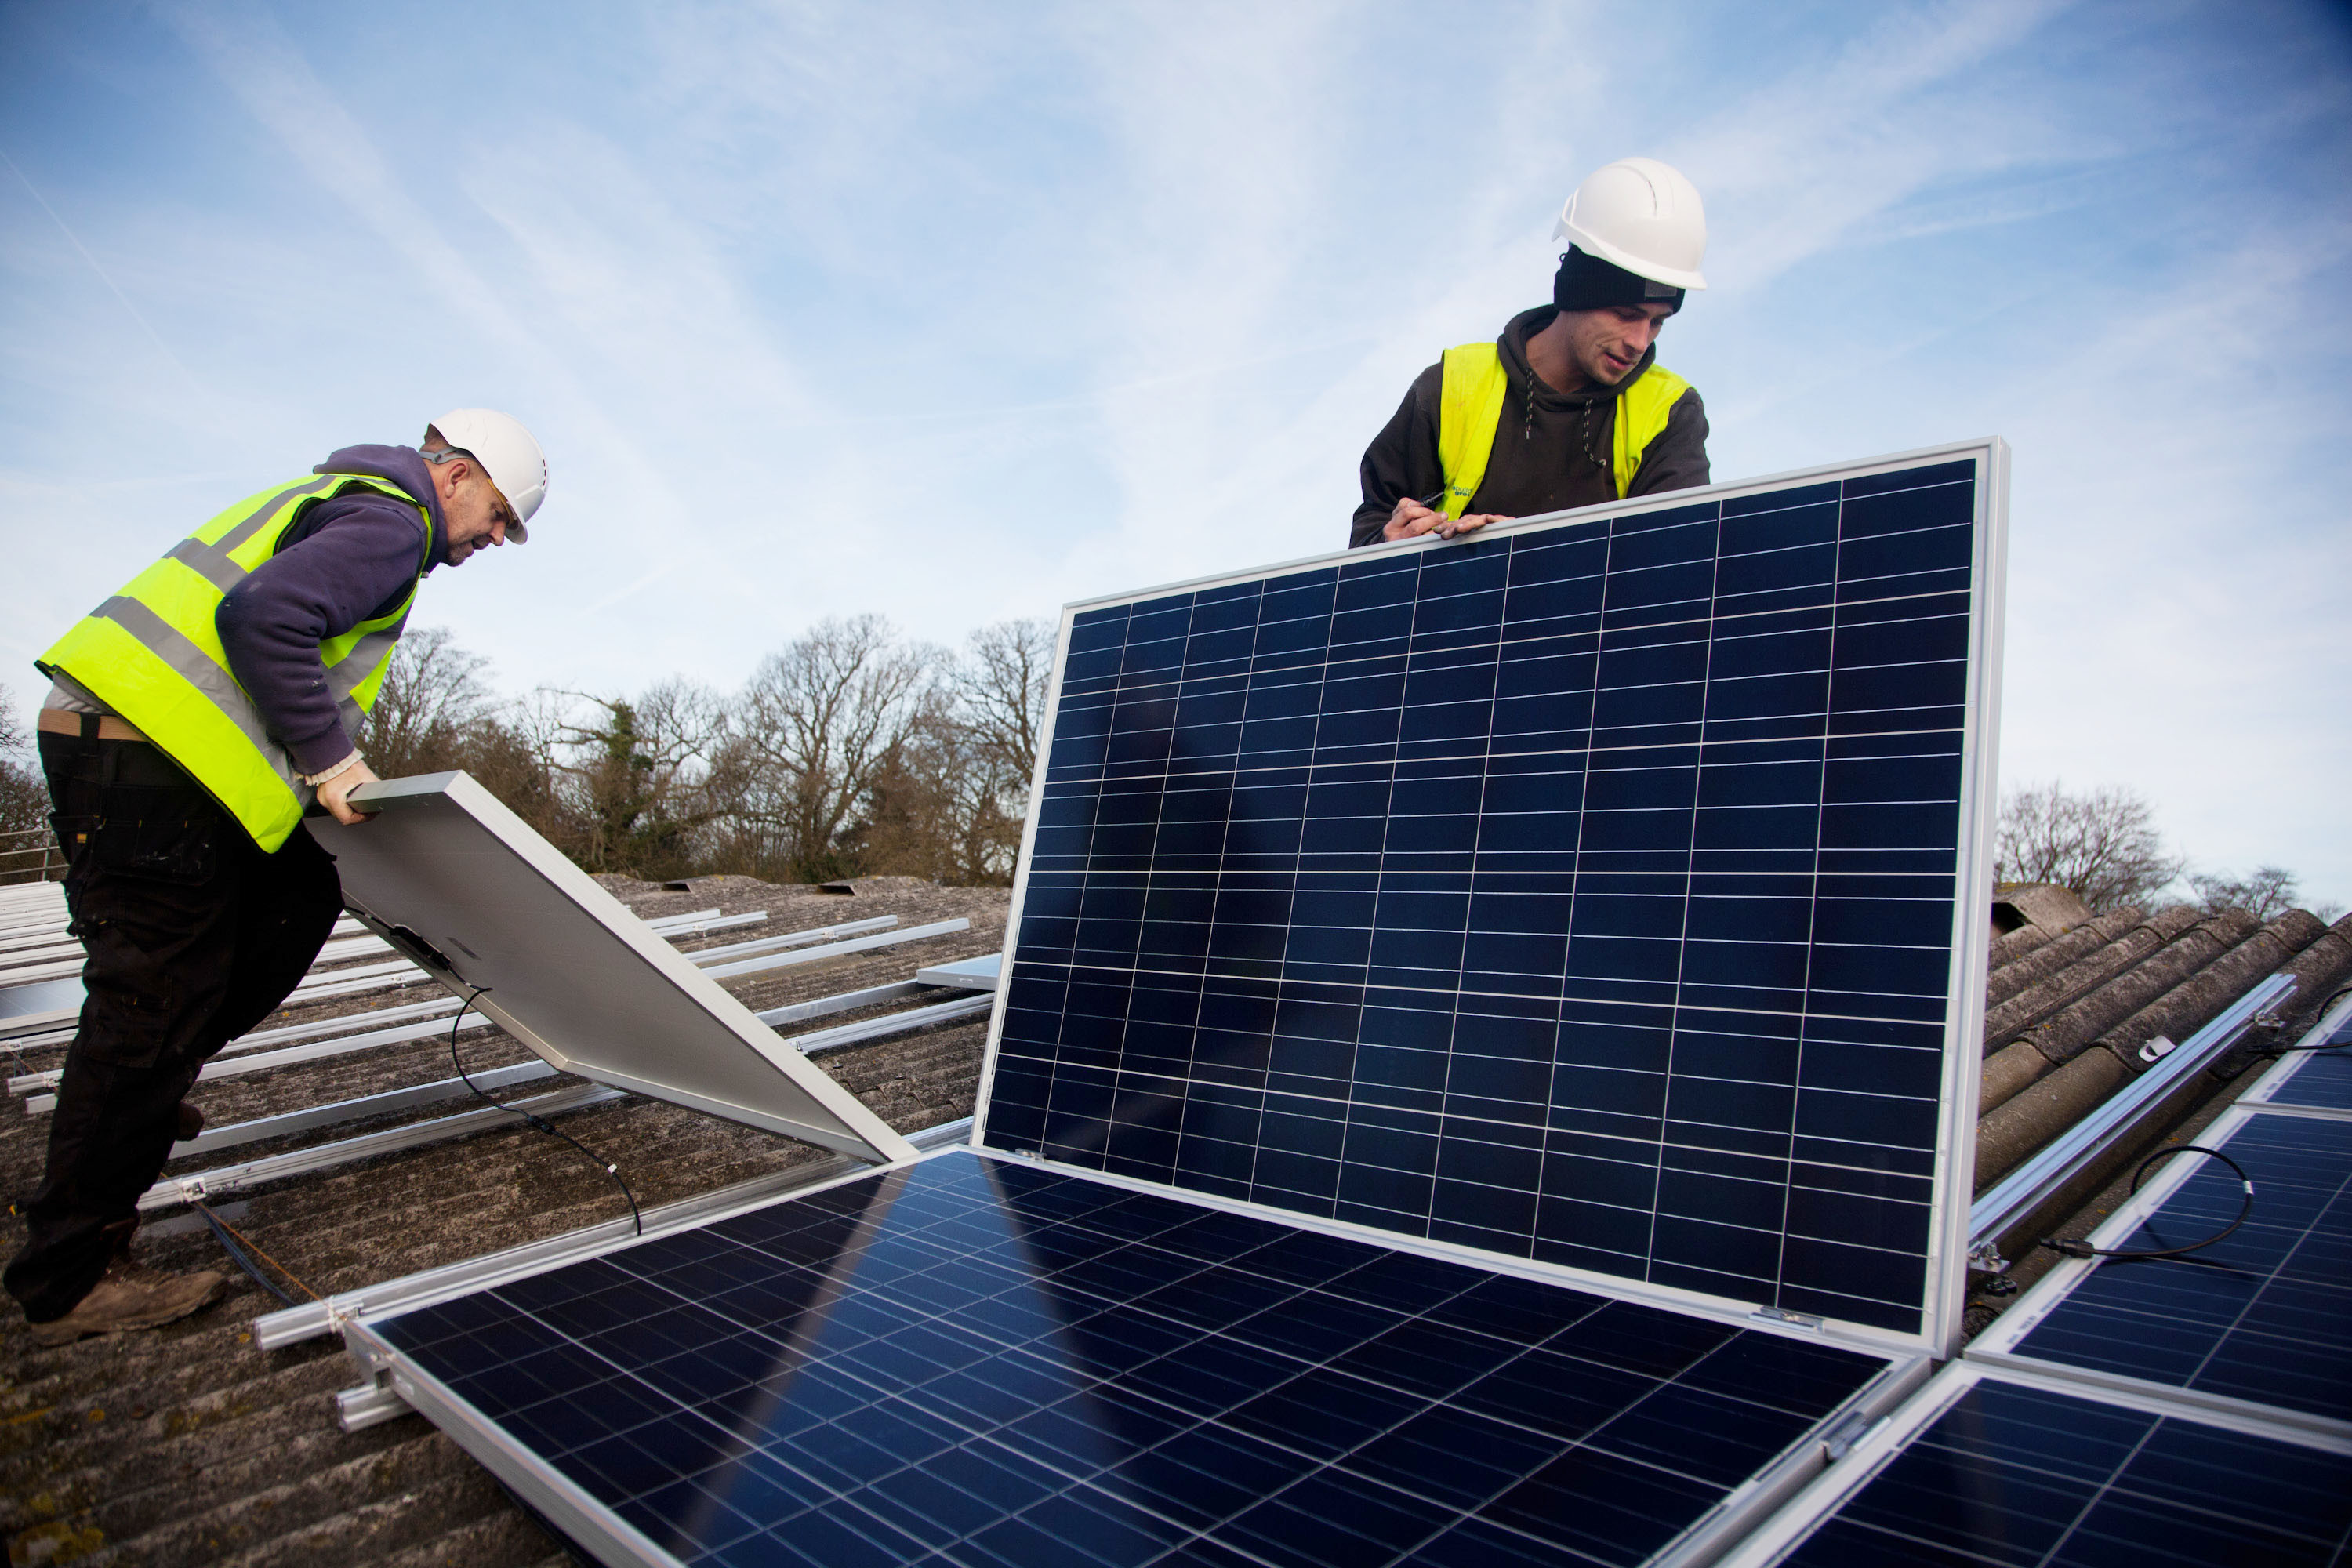 Workers install solar panels on the roof of a barn.